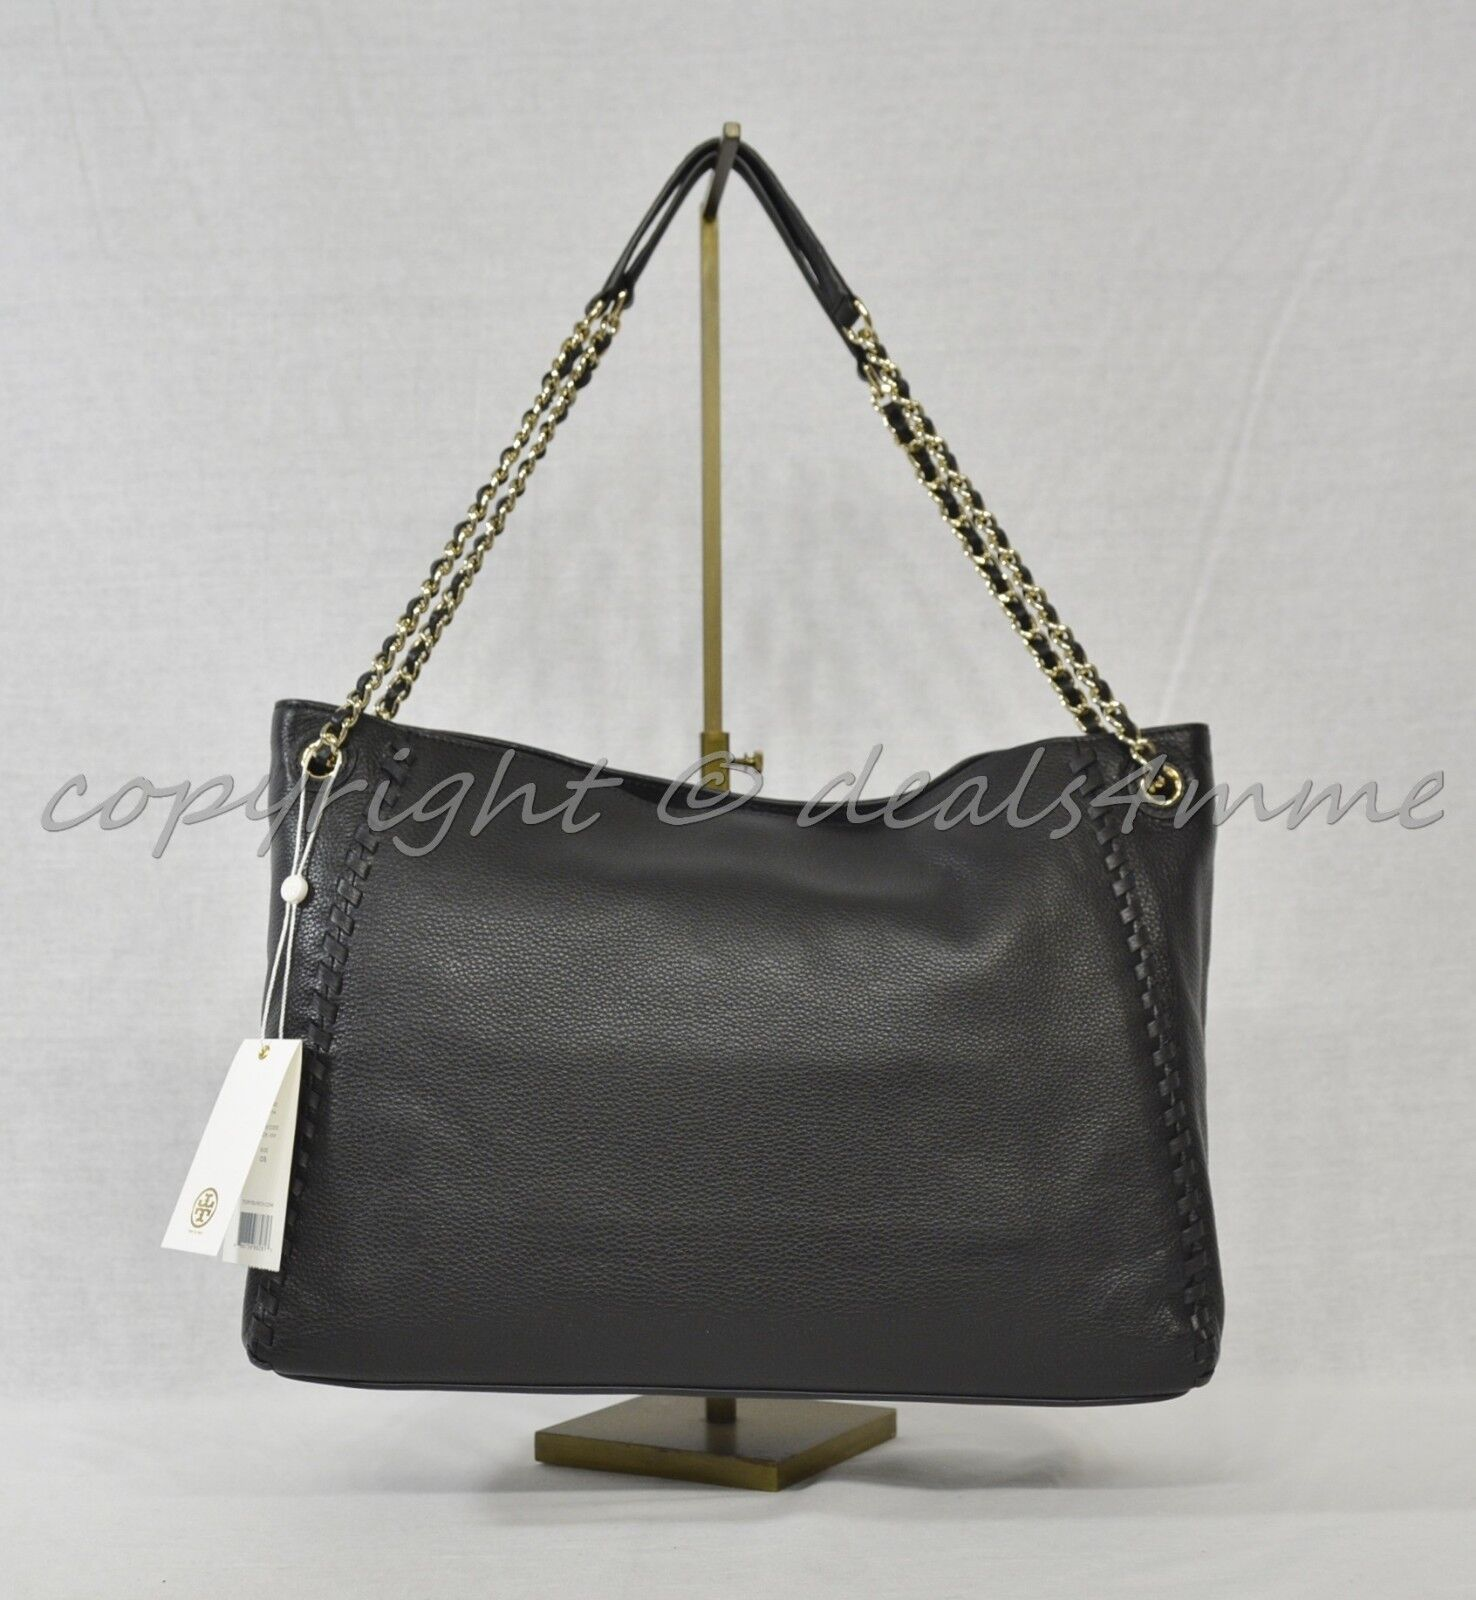 e7b53657aaac Tory Burch Marion Whipstitched Leather Slouchy Tote Shoulder Bag Black for  sale online